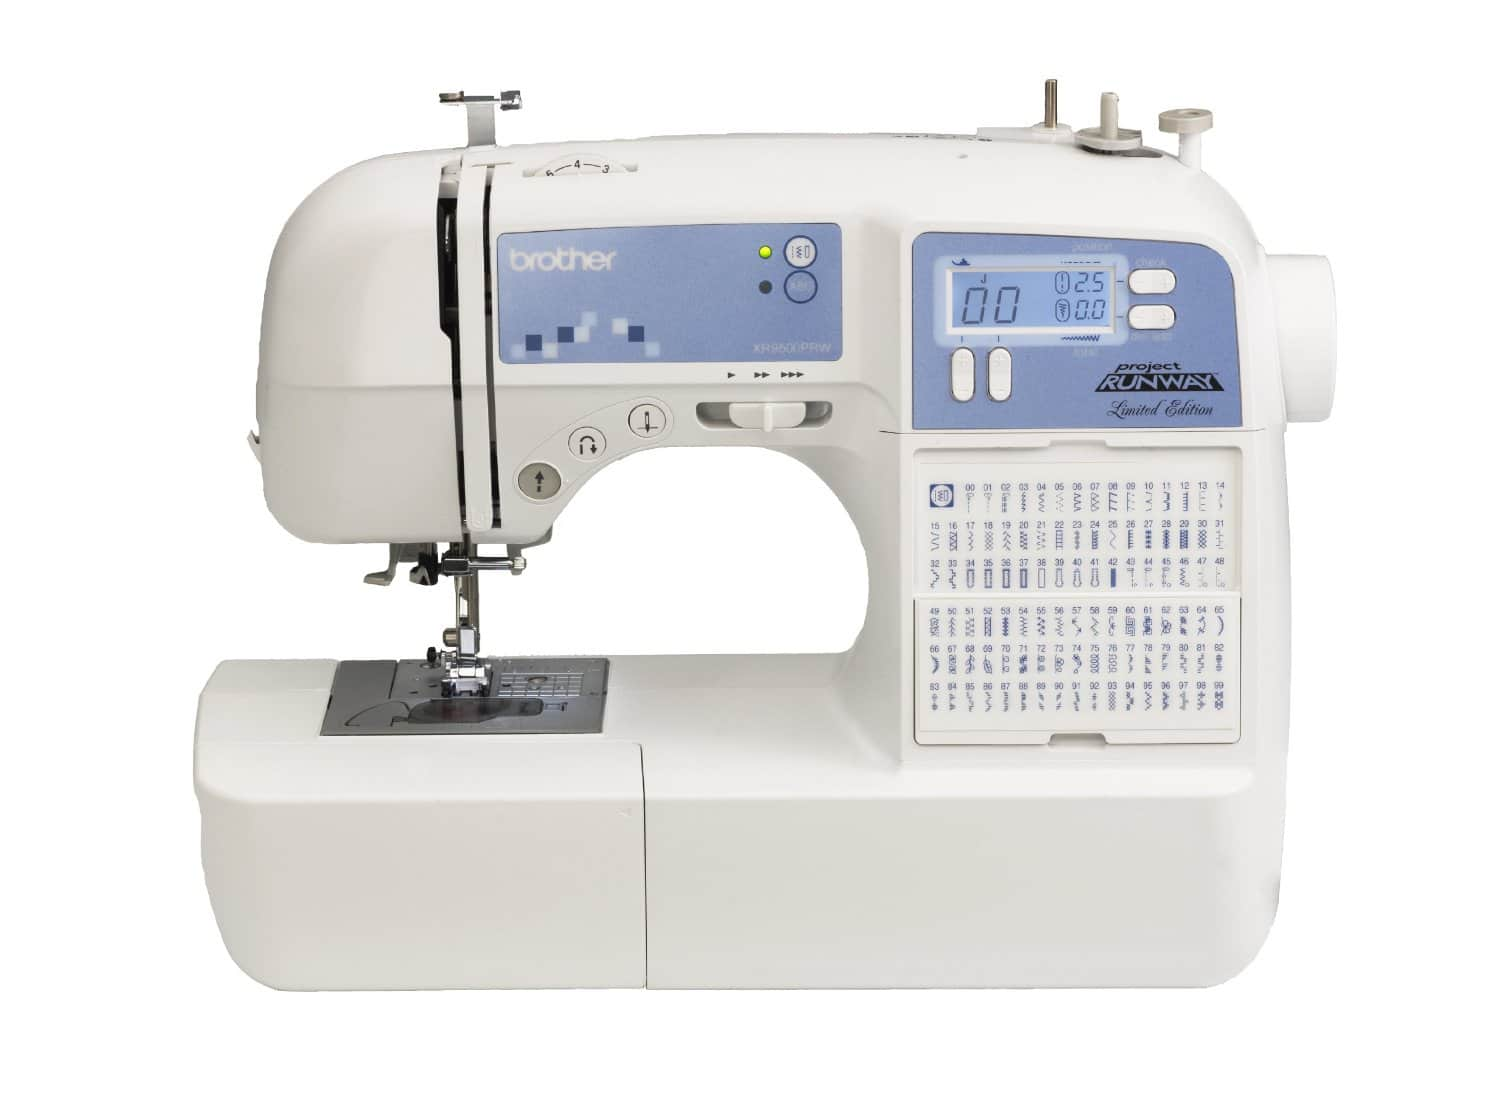 The Best Sewing Machine For Beginners : buying a sewing machine for quilting - Adamdwight.com